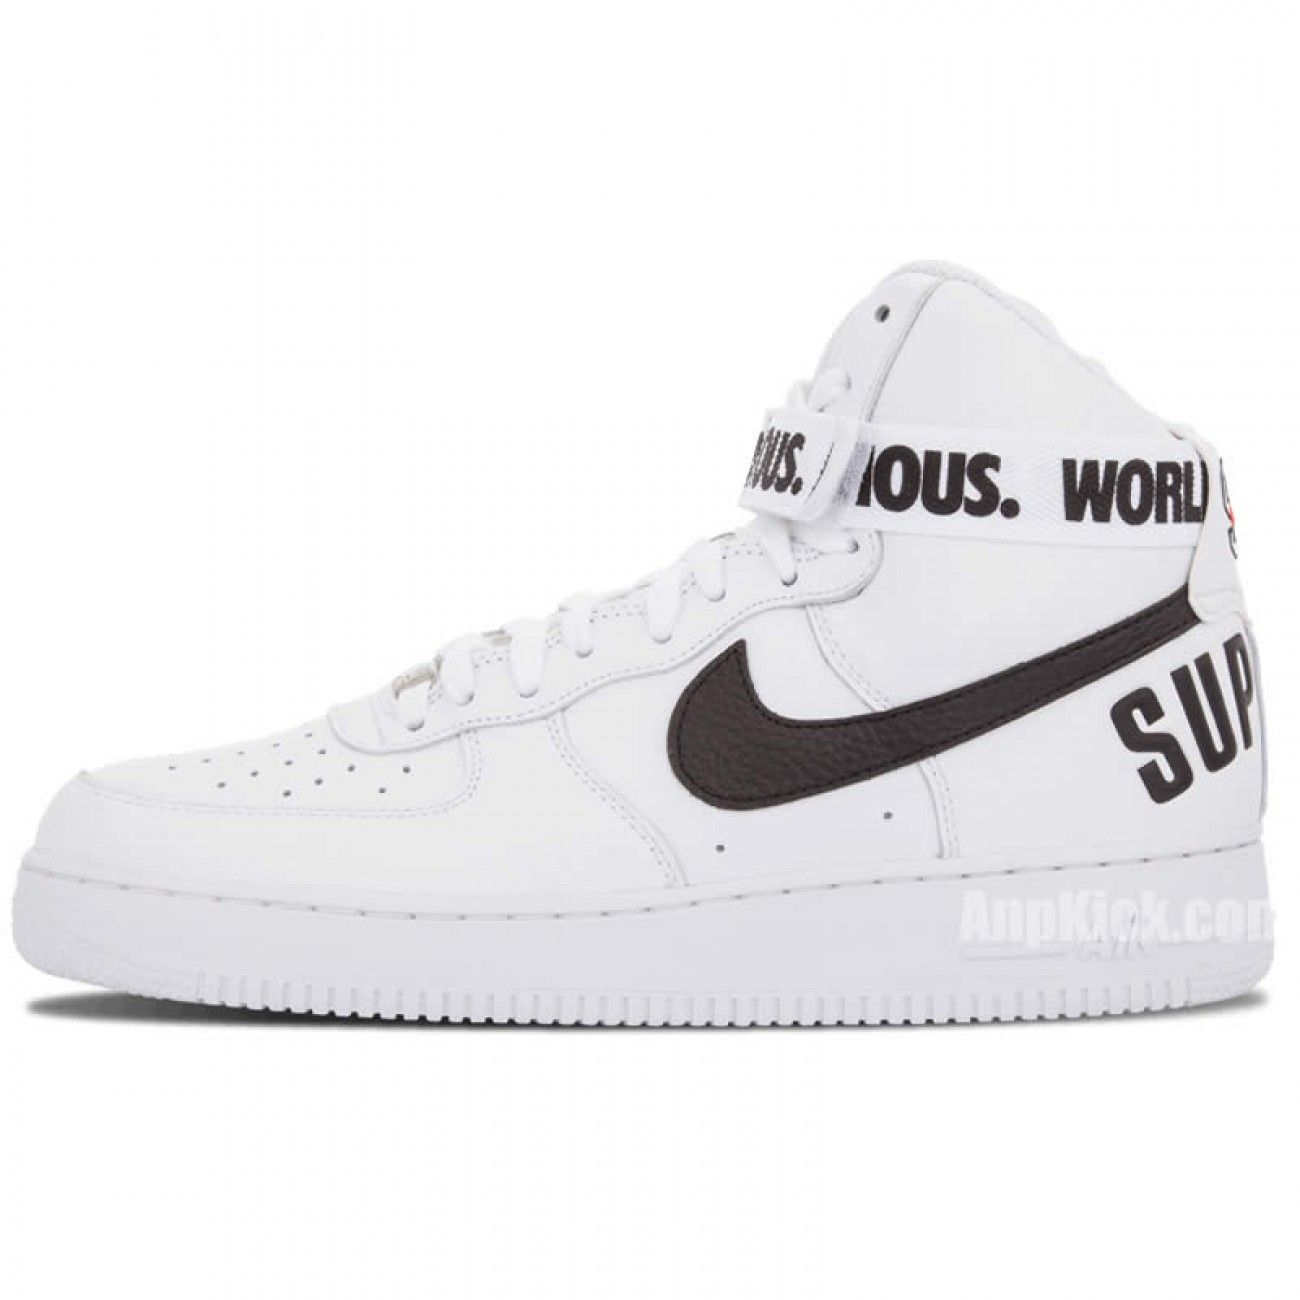 Supreme X Nike Air Force 1 High Sp World Famous 94 White Black 698696 100 Nike Air Force High Nike Air Nike